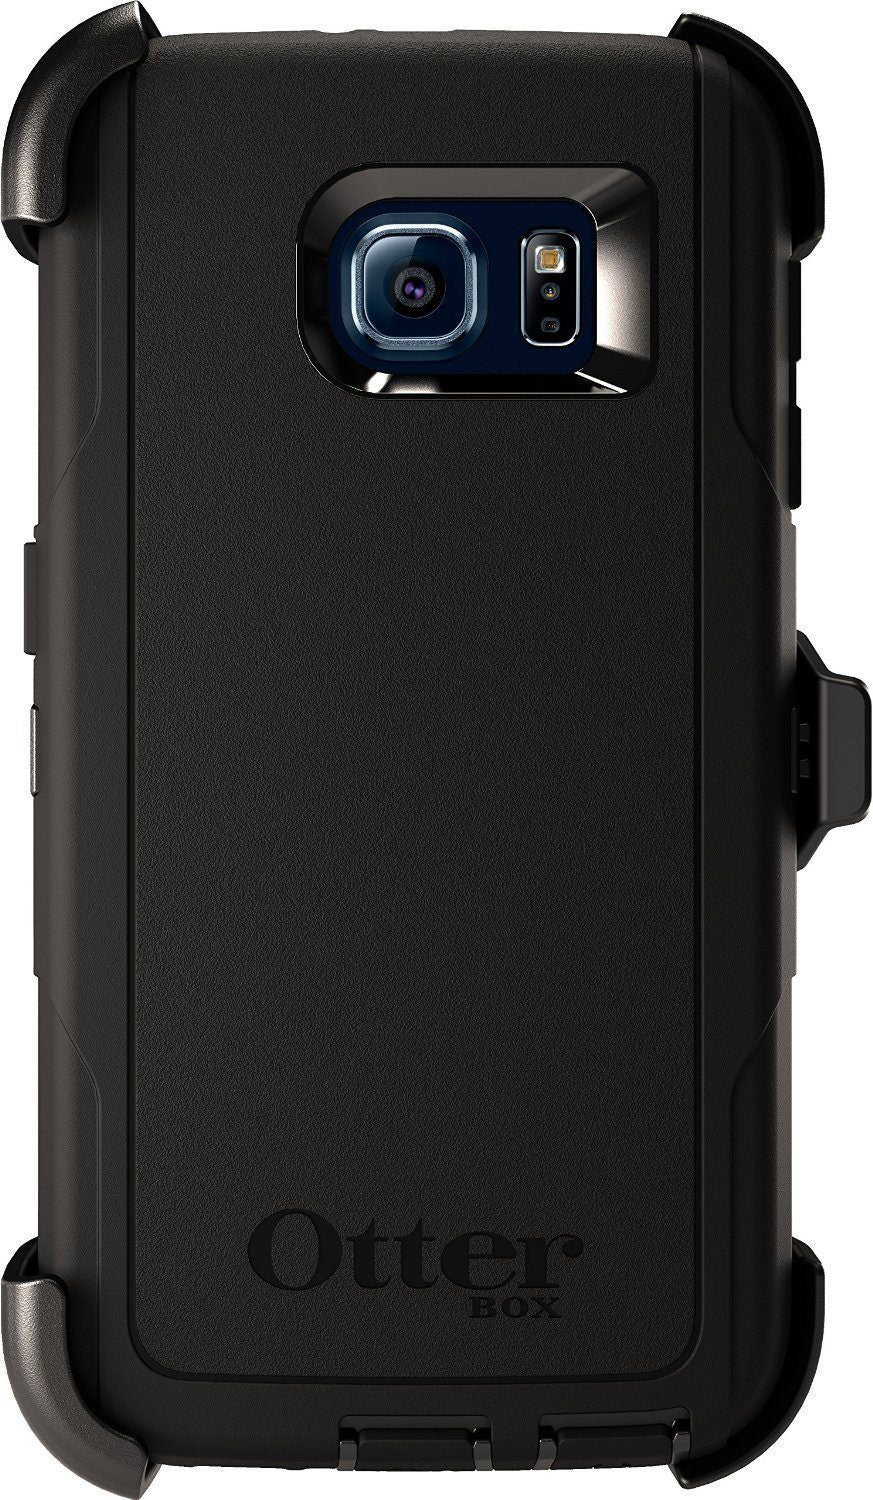 Back Cover - Otterbox Defender Rugged Case For Samsung S6